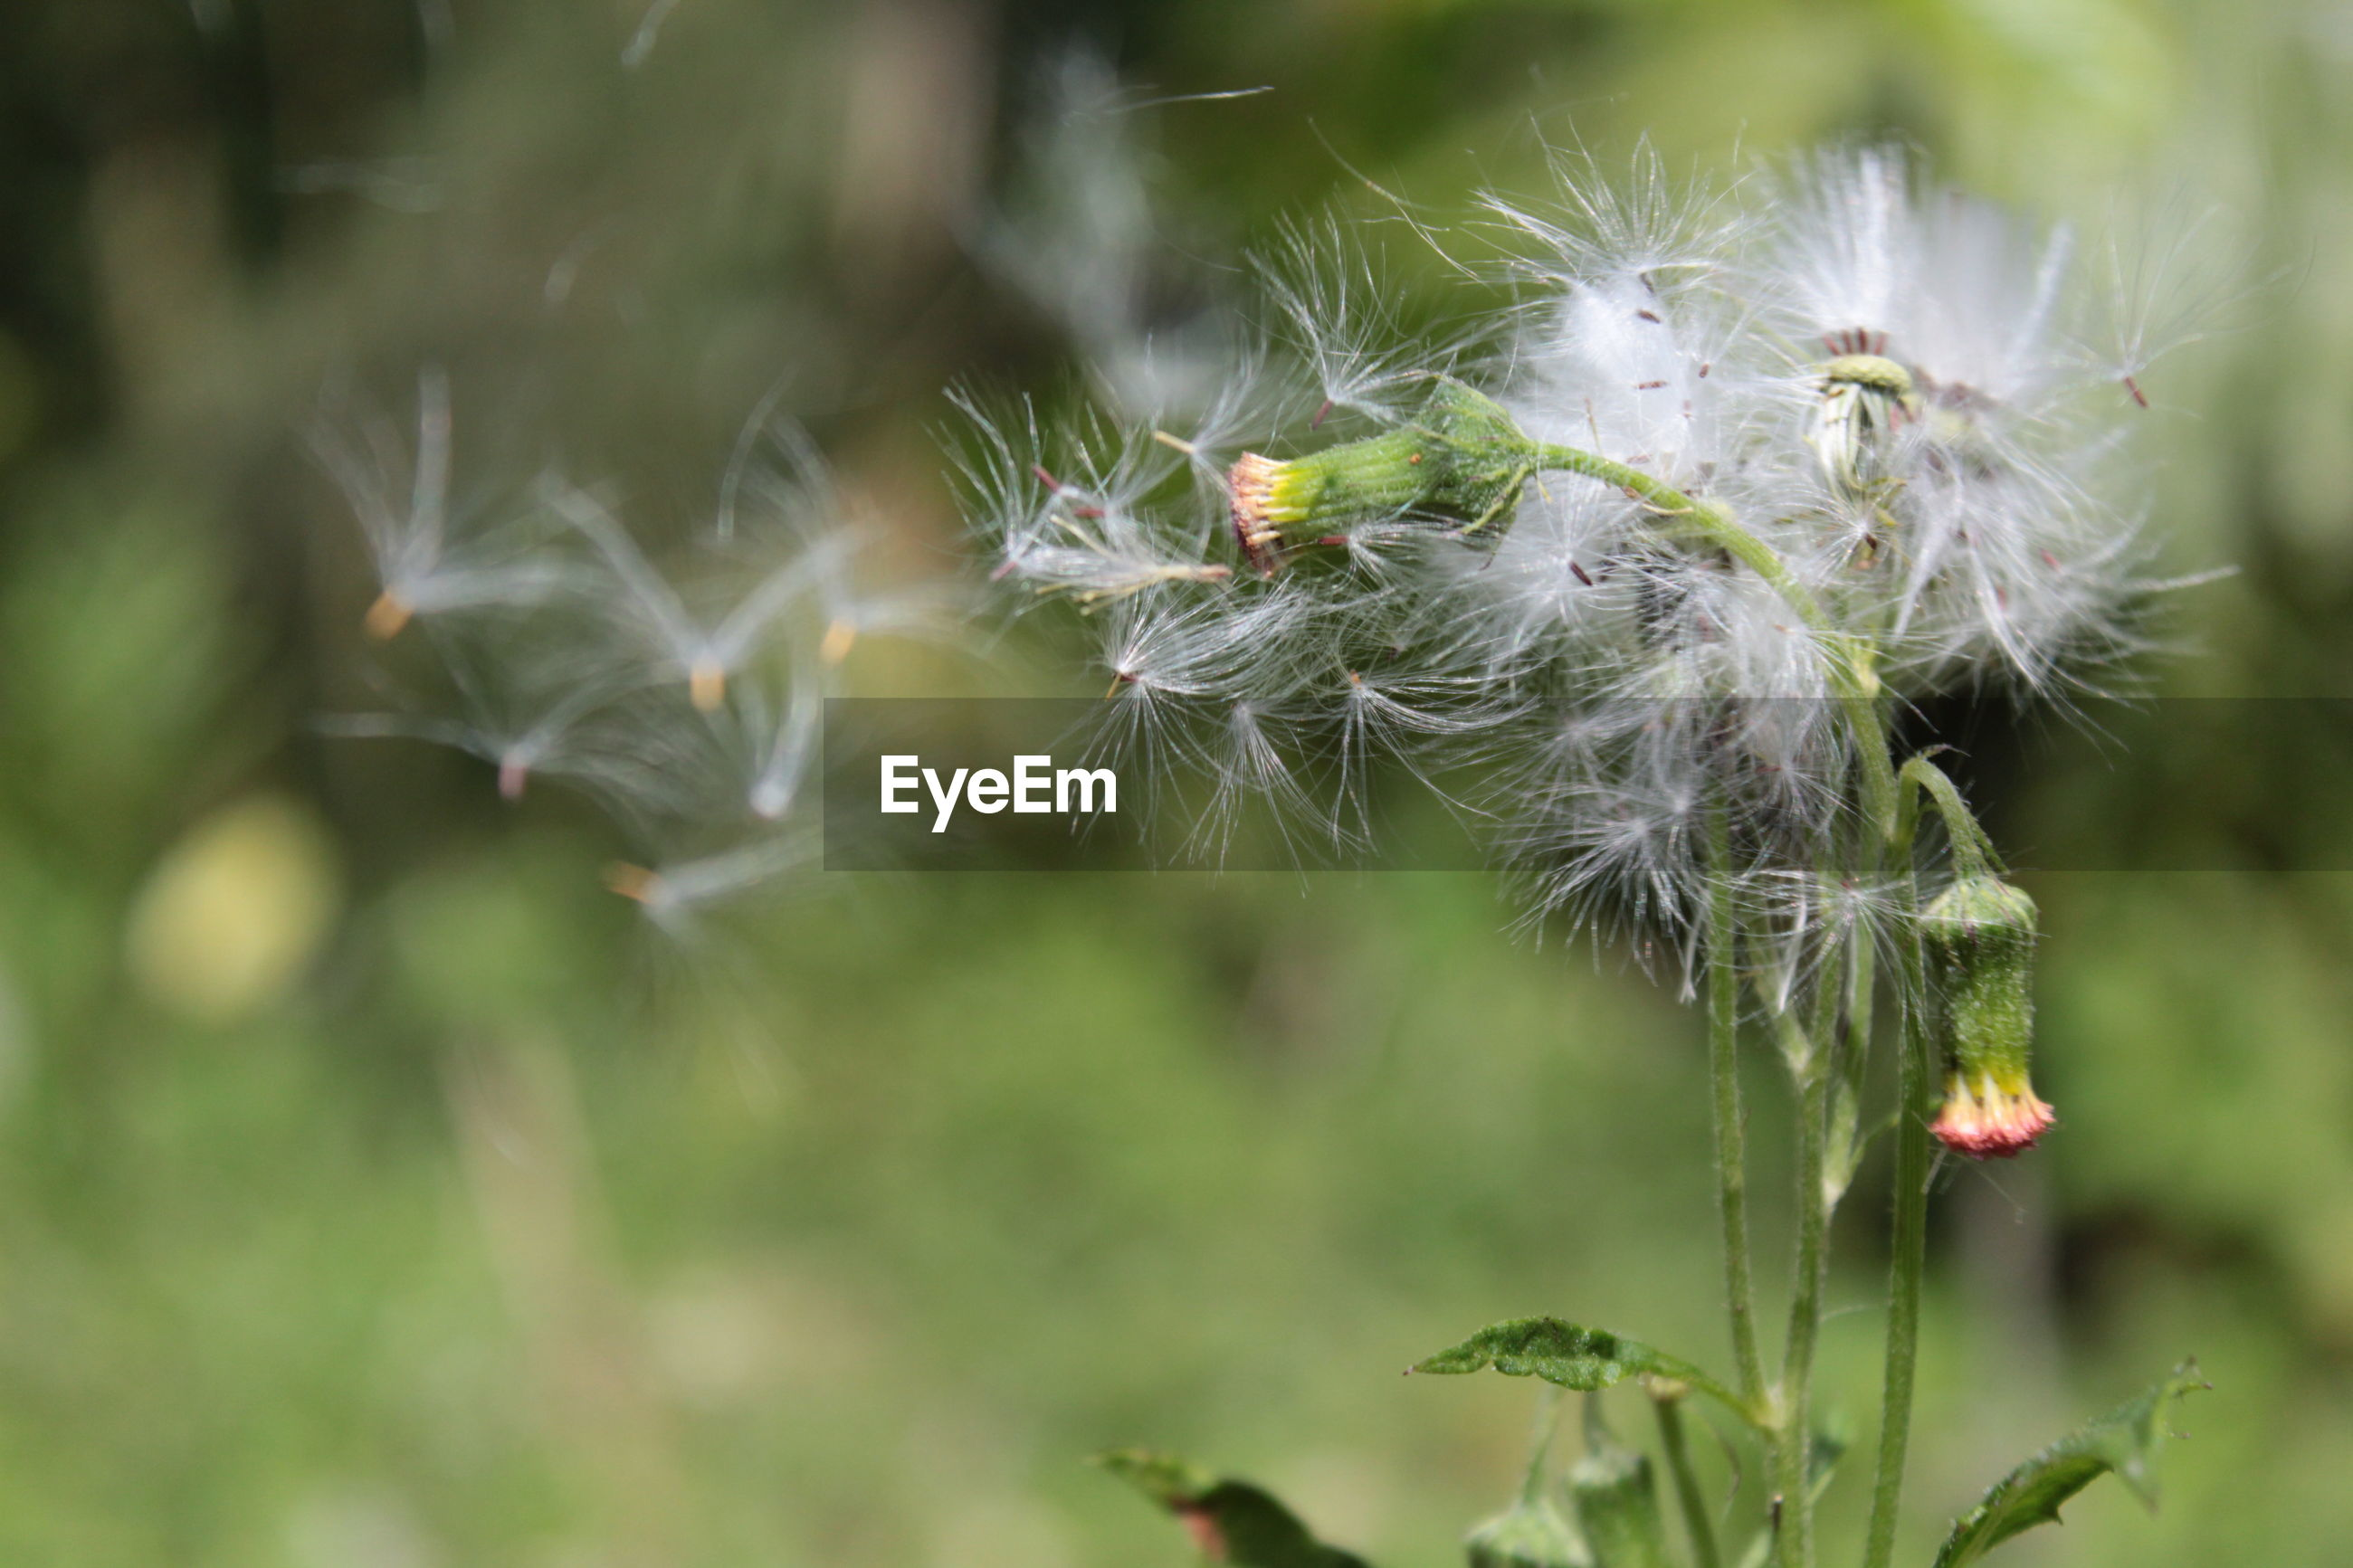 CLOSE-UP OF DANDELION ON PLANT OUTDOORS